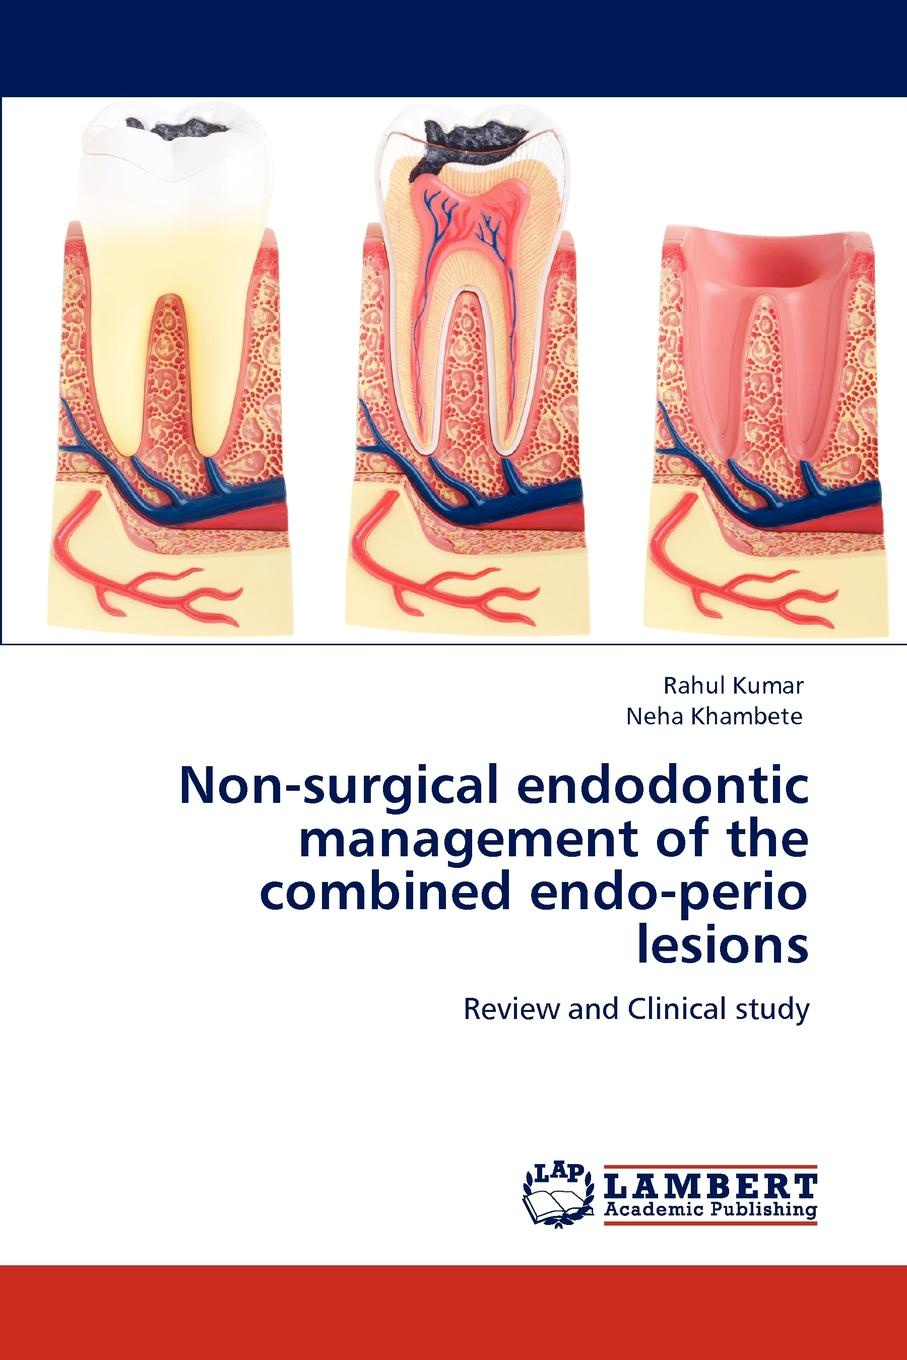 Rahul Kumar, Neha Khambete Non-surgical endodontic management of the combined endo-perio lesions the endodontic periodontal interrelationships